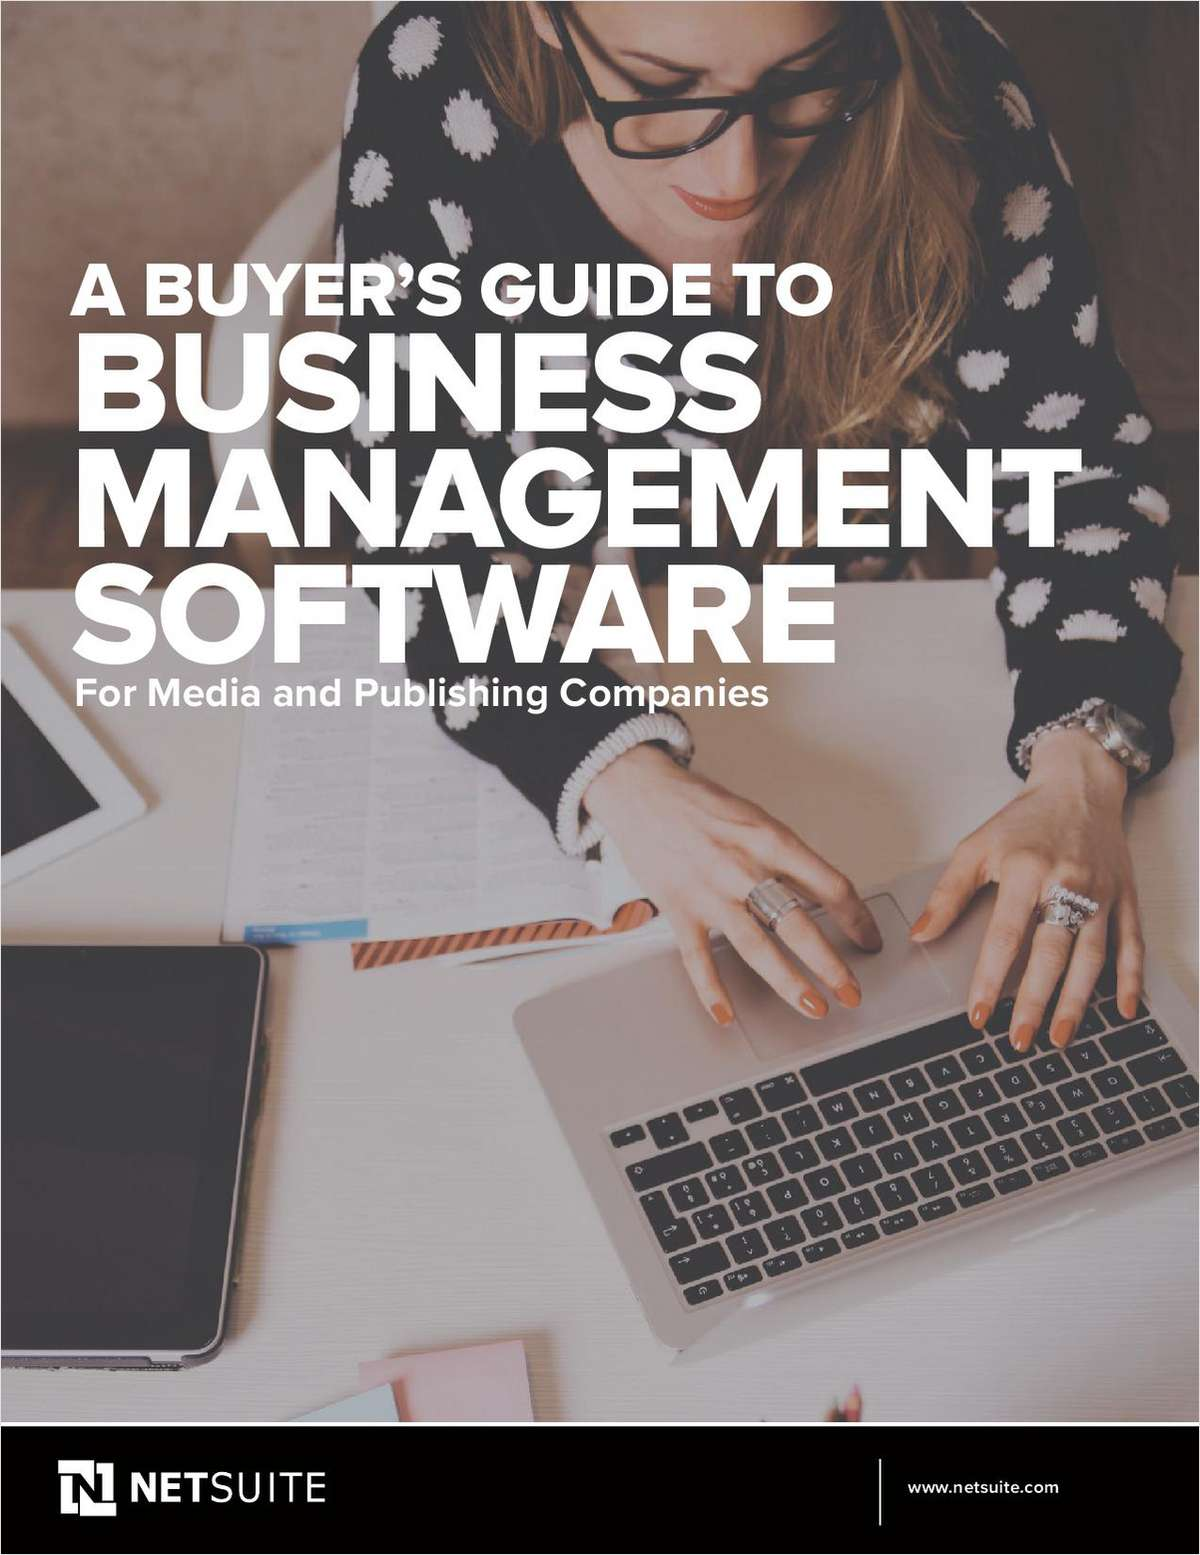 Business Management Software for Media and Publishing Companies